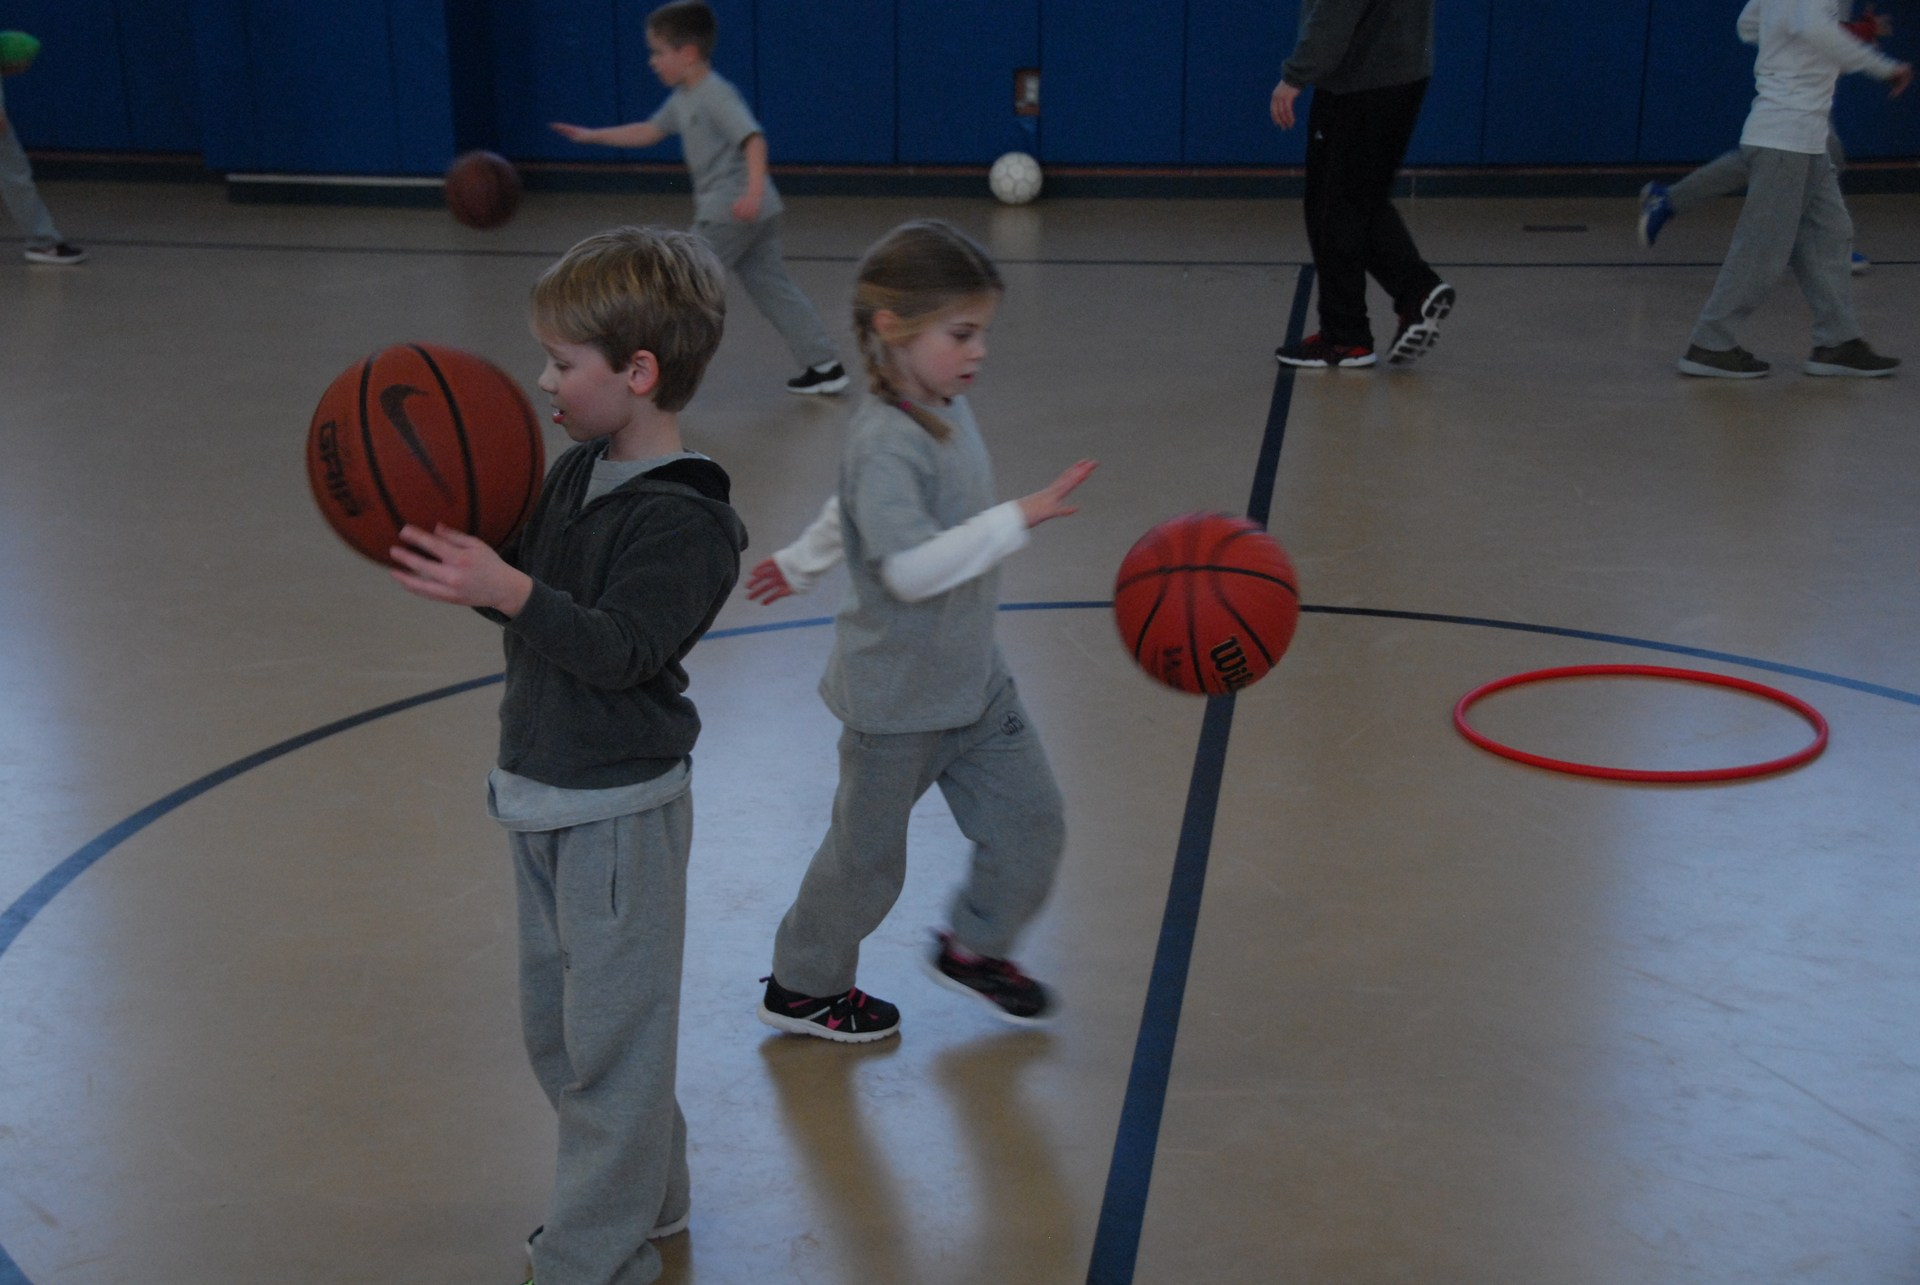 Two students play basketball during class